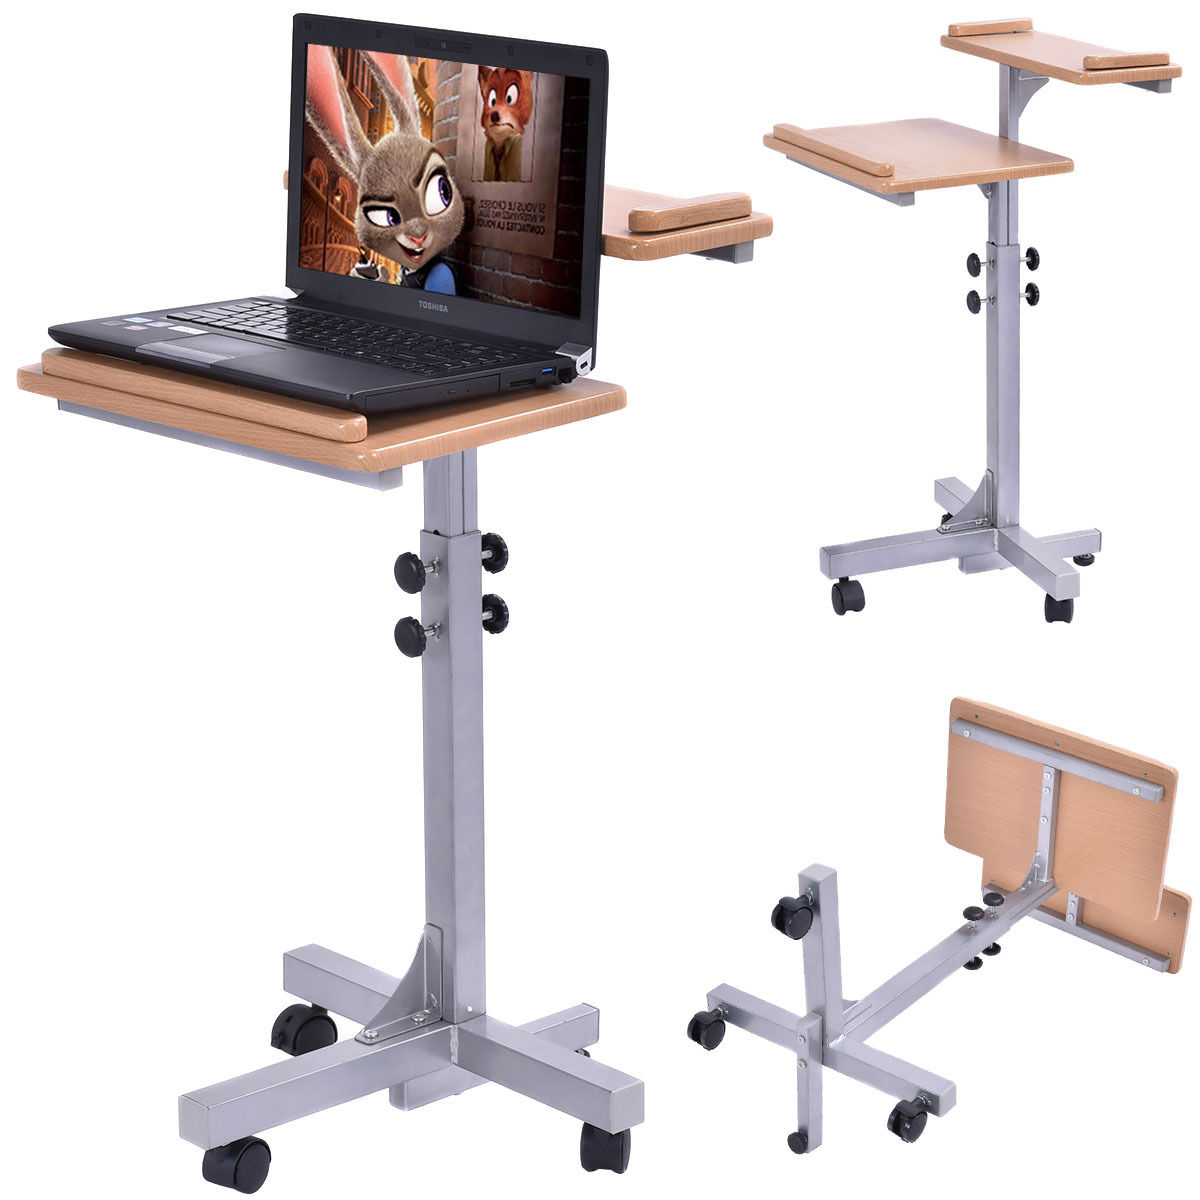 chair computer stand ergonomic the castle adjustable wooden laptop table with work top and wheels